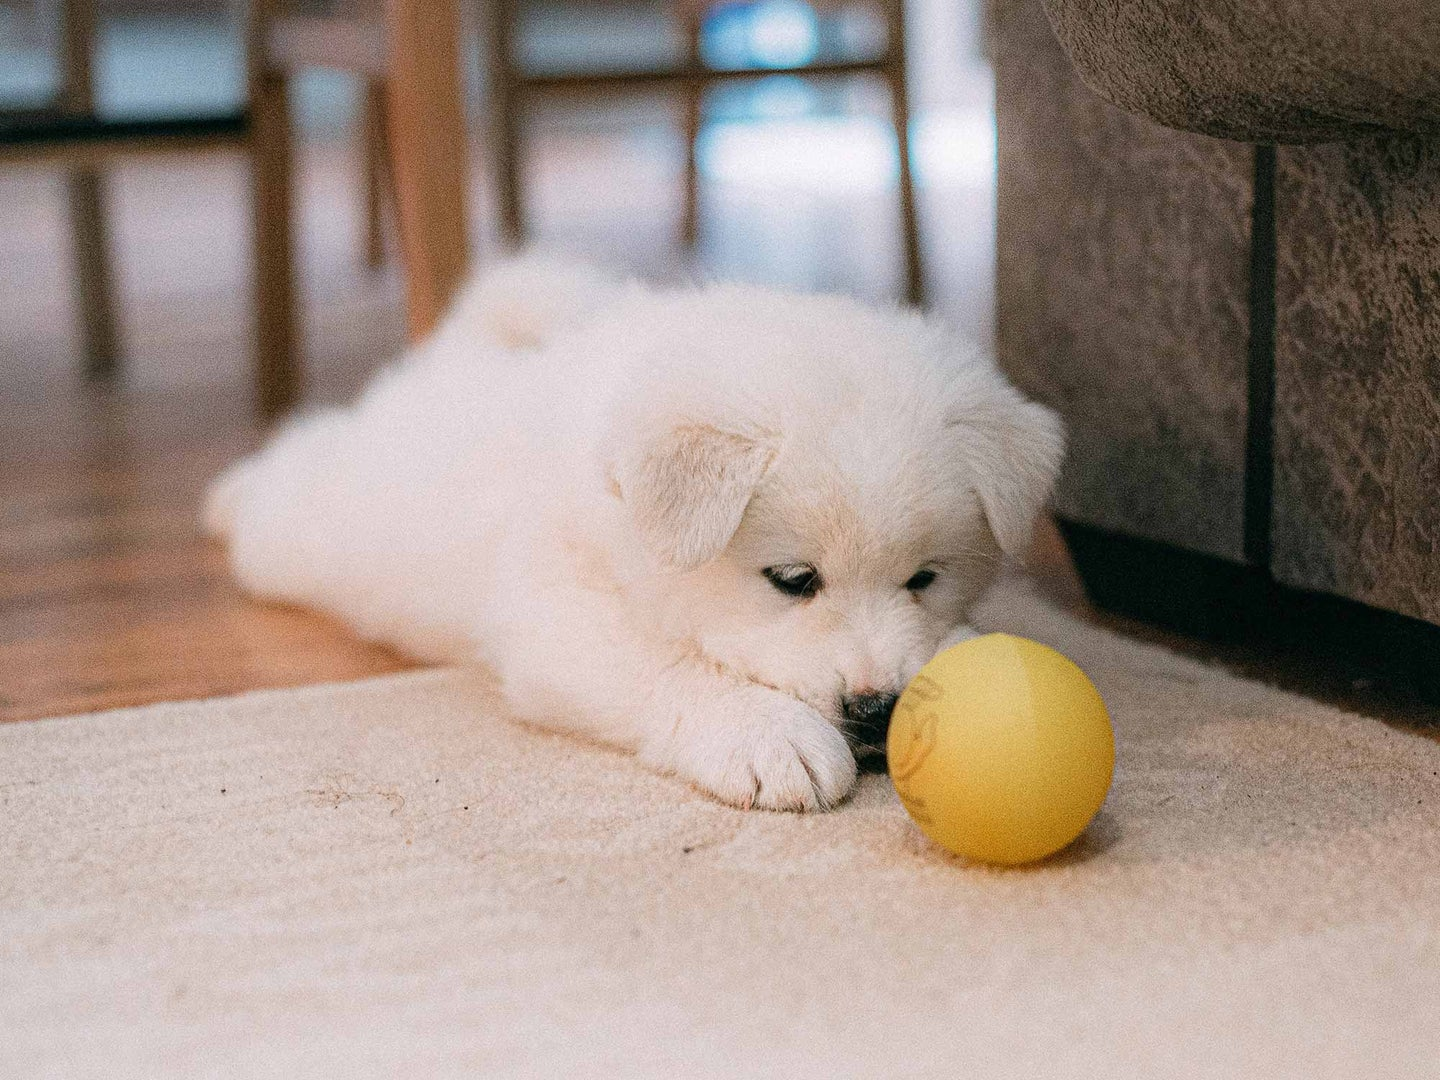 Fluffy white puppy with yellow ball